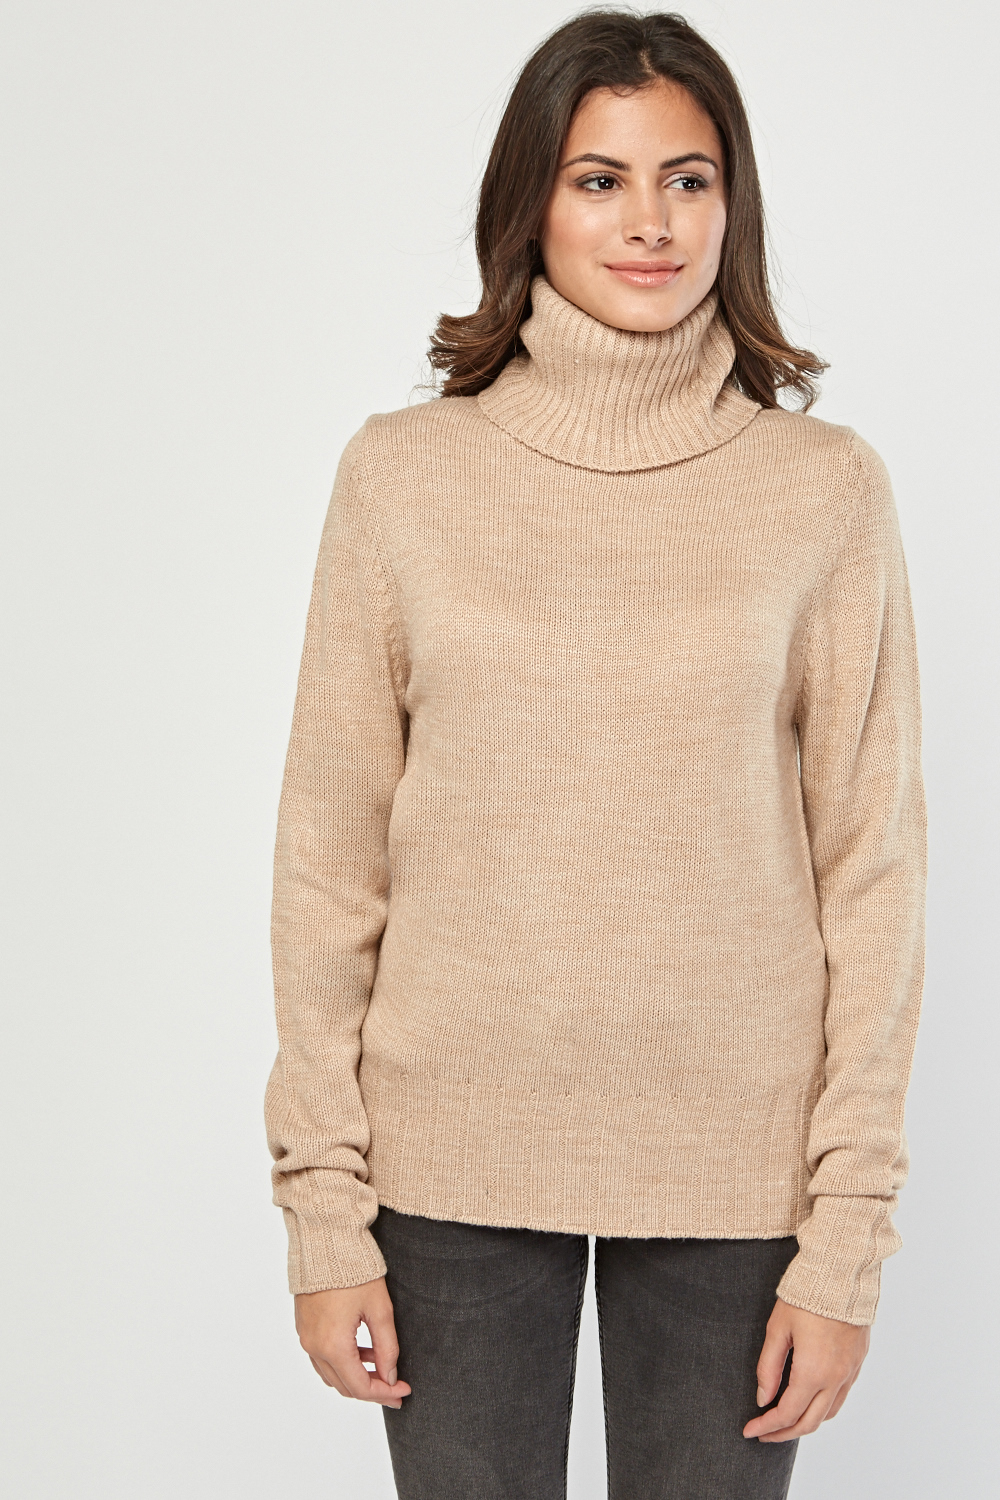 e91e522a61f84b Ribbed Trim Roll Neck Jumper - Beige - Just £5